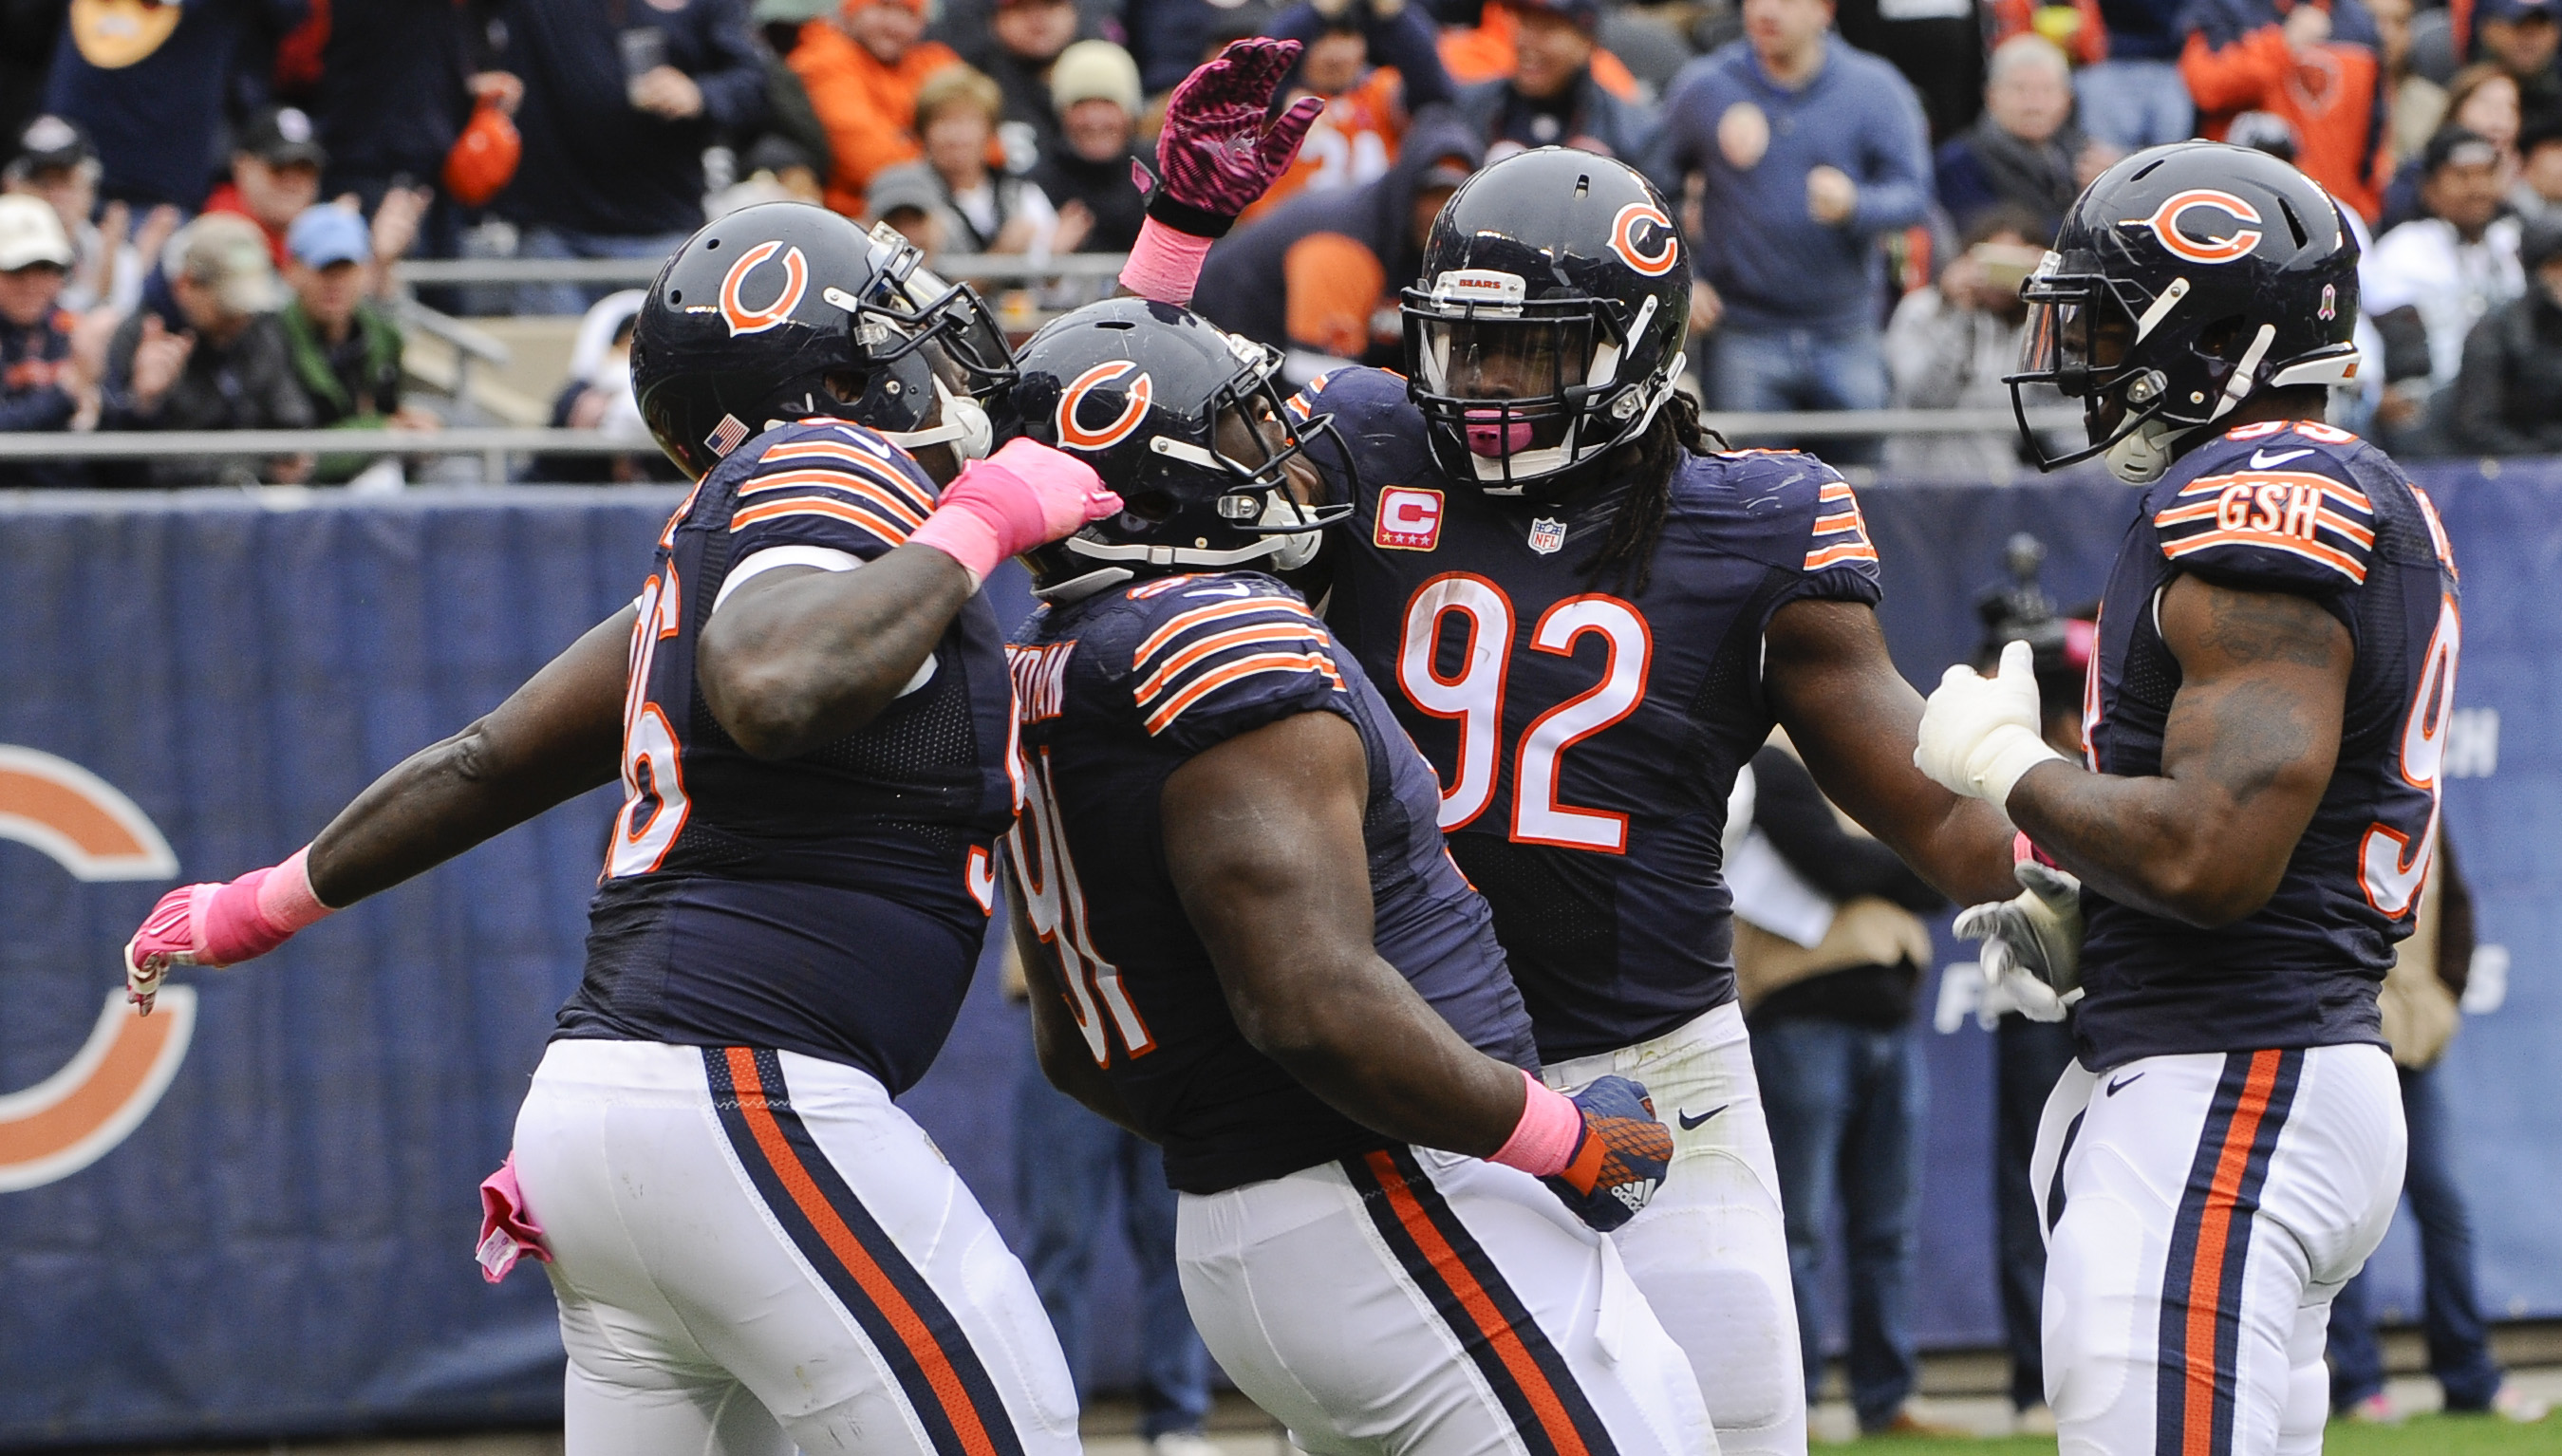 8848417-nfl-oakland-raiders-at-chicago-bears